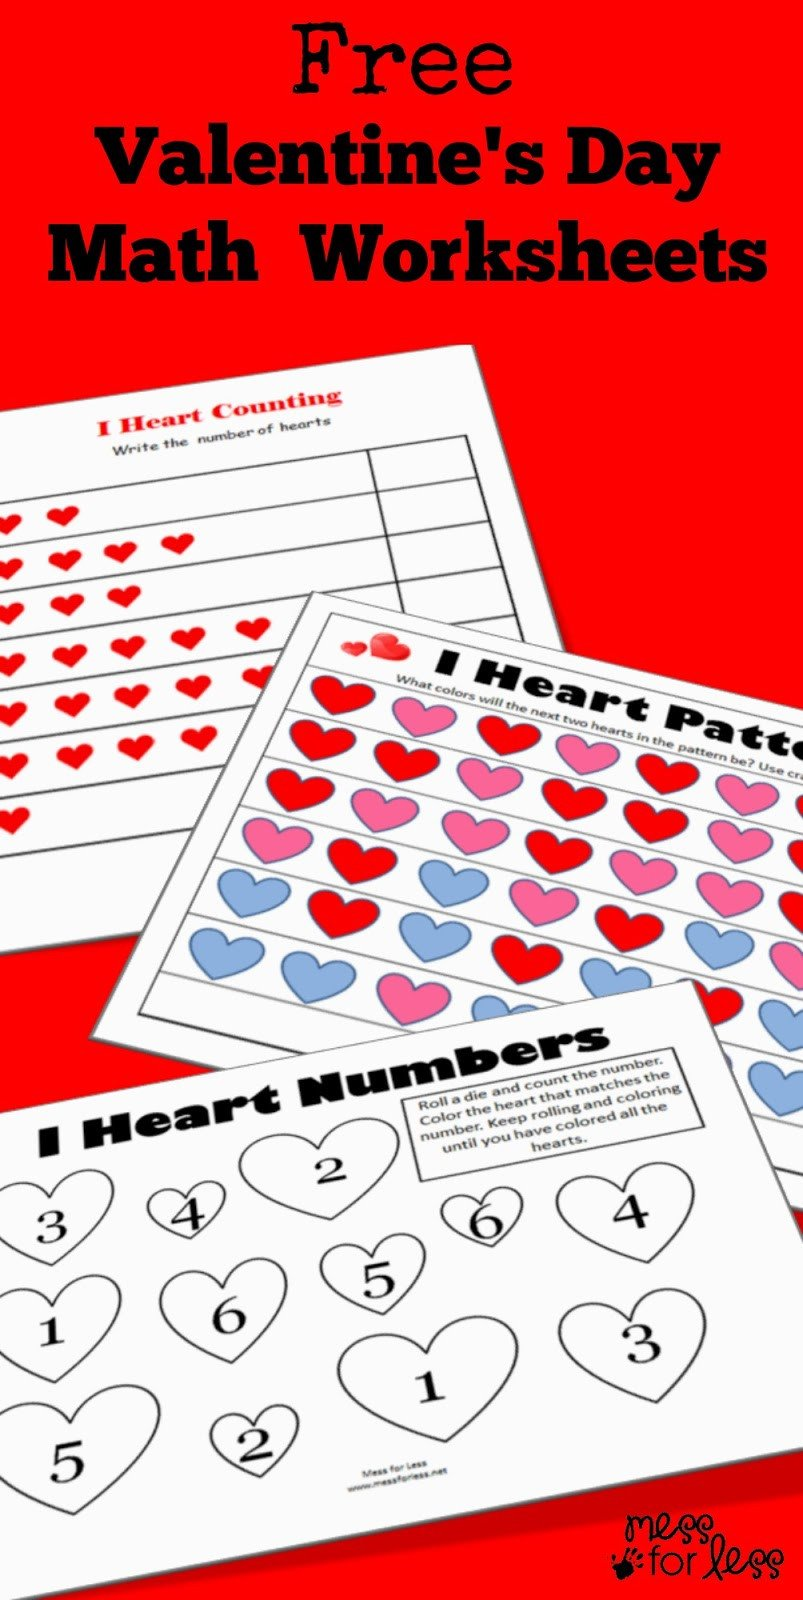 Kindergarten Valentine Math Worksheets Valentine S Math Kindergarten Worksheets Mess for Less